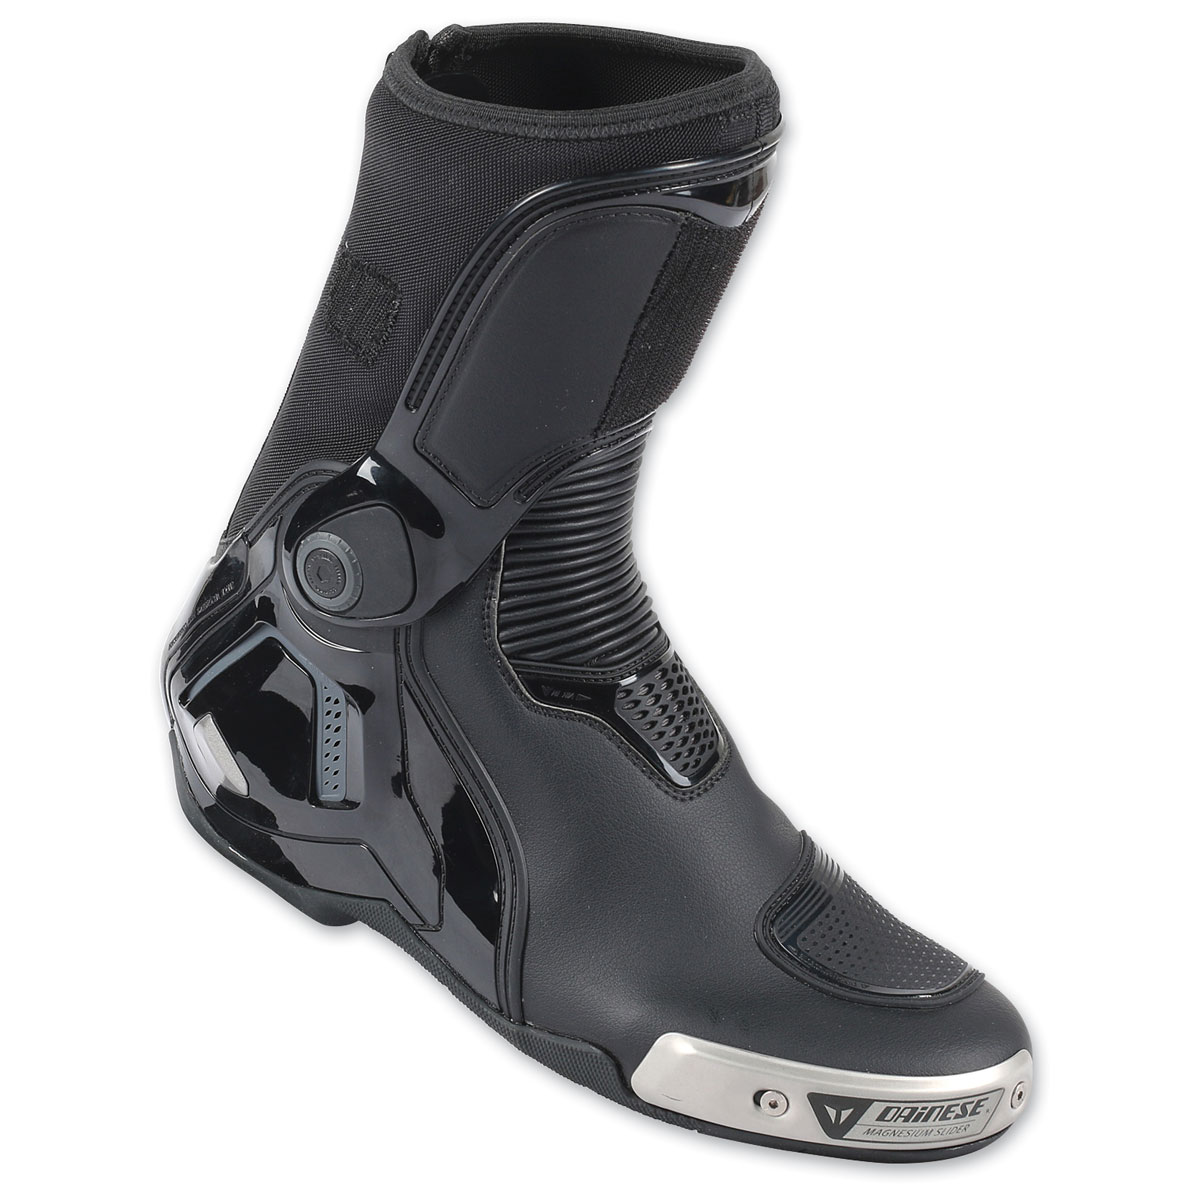 Dainese Men's Torque D1 In Black/Anthracite Boots